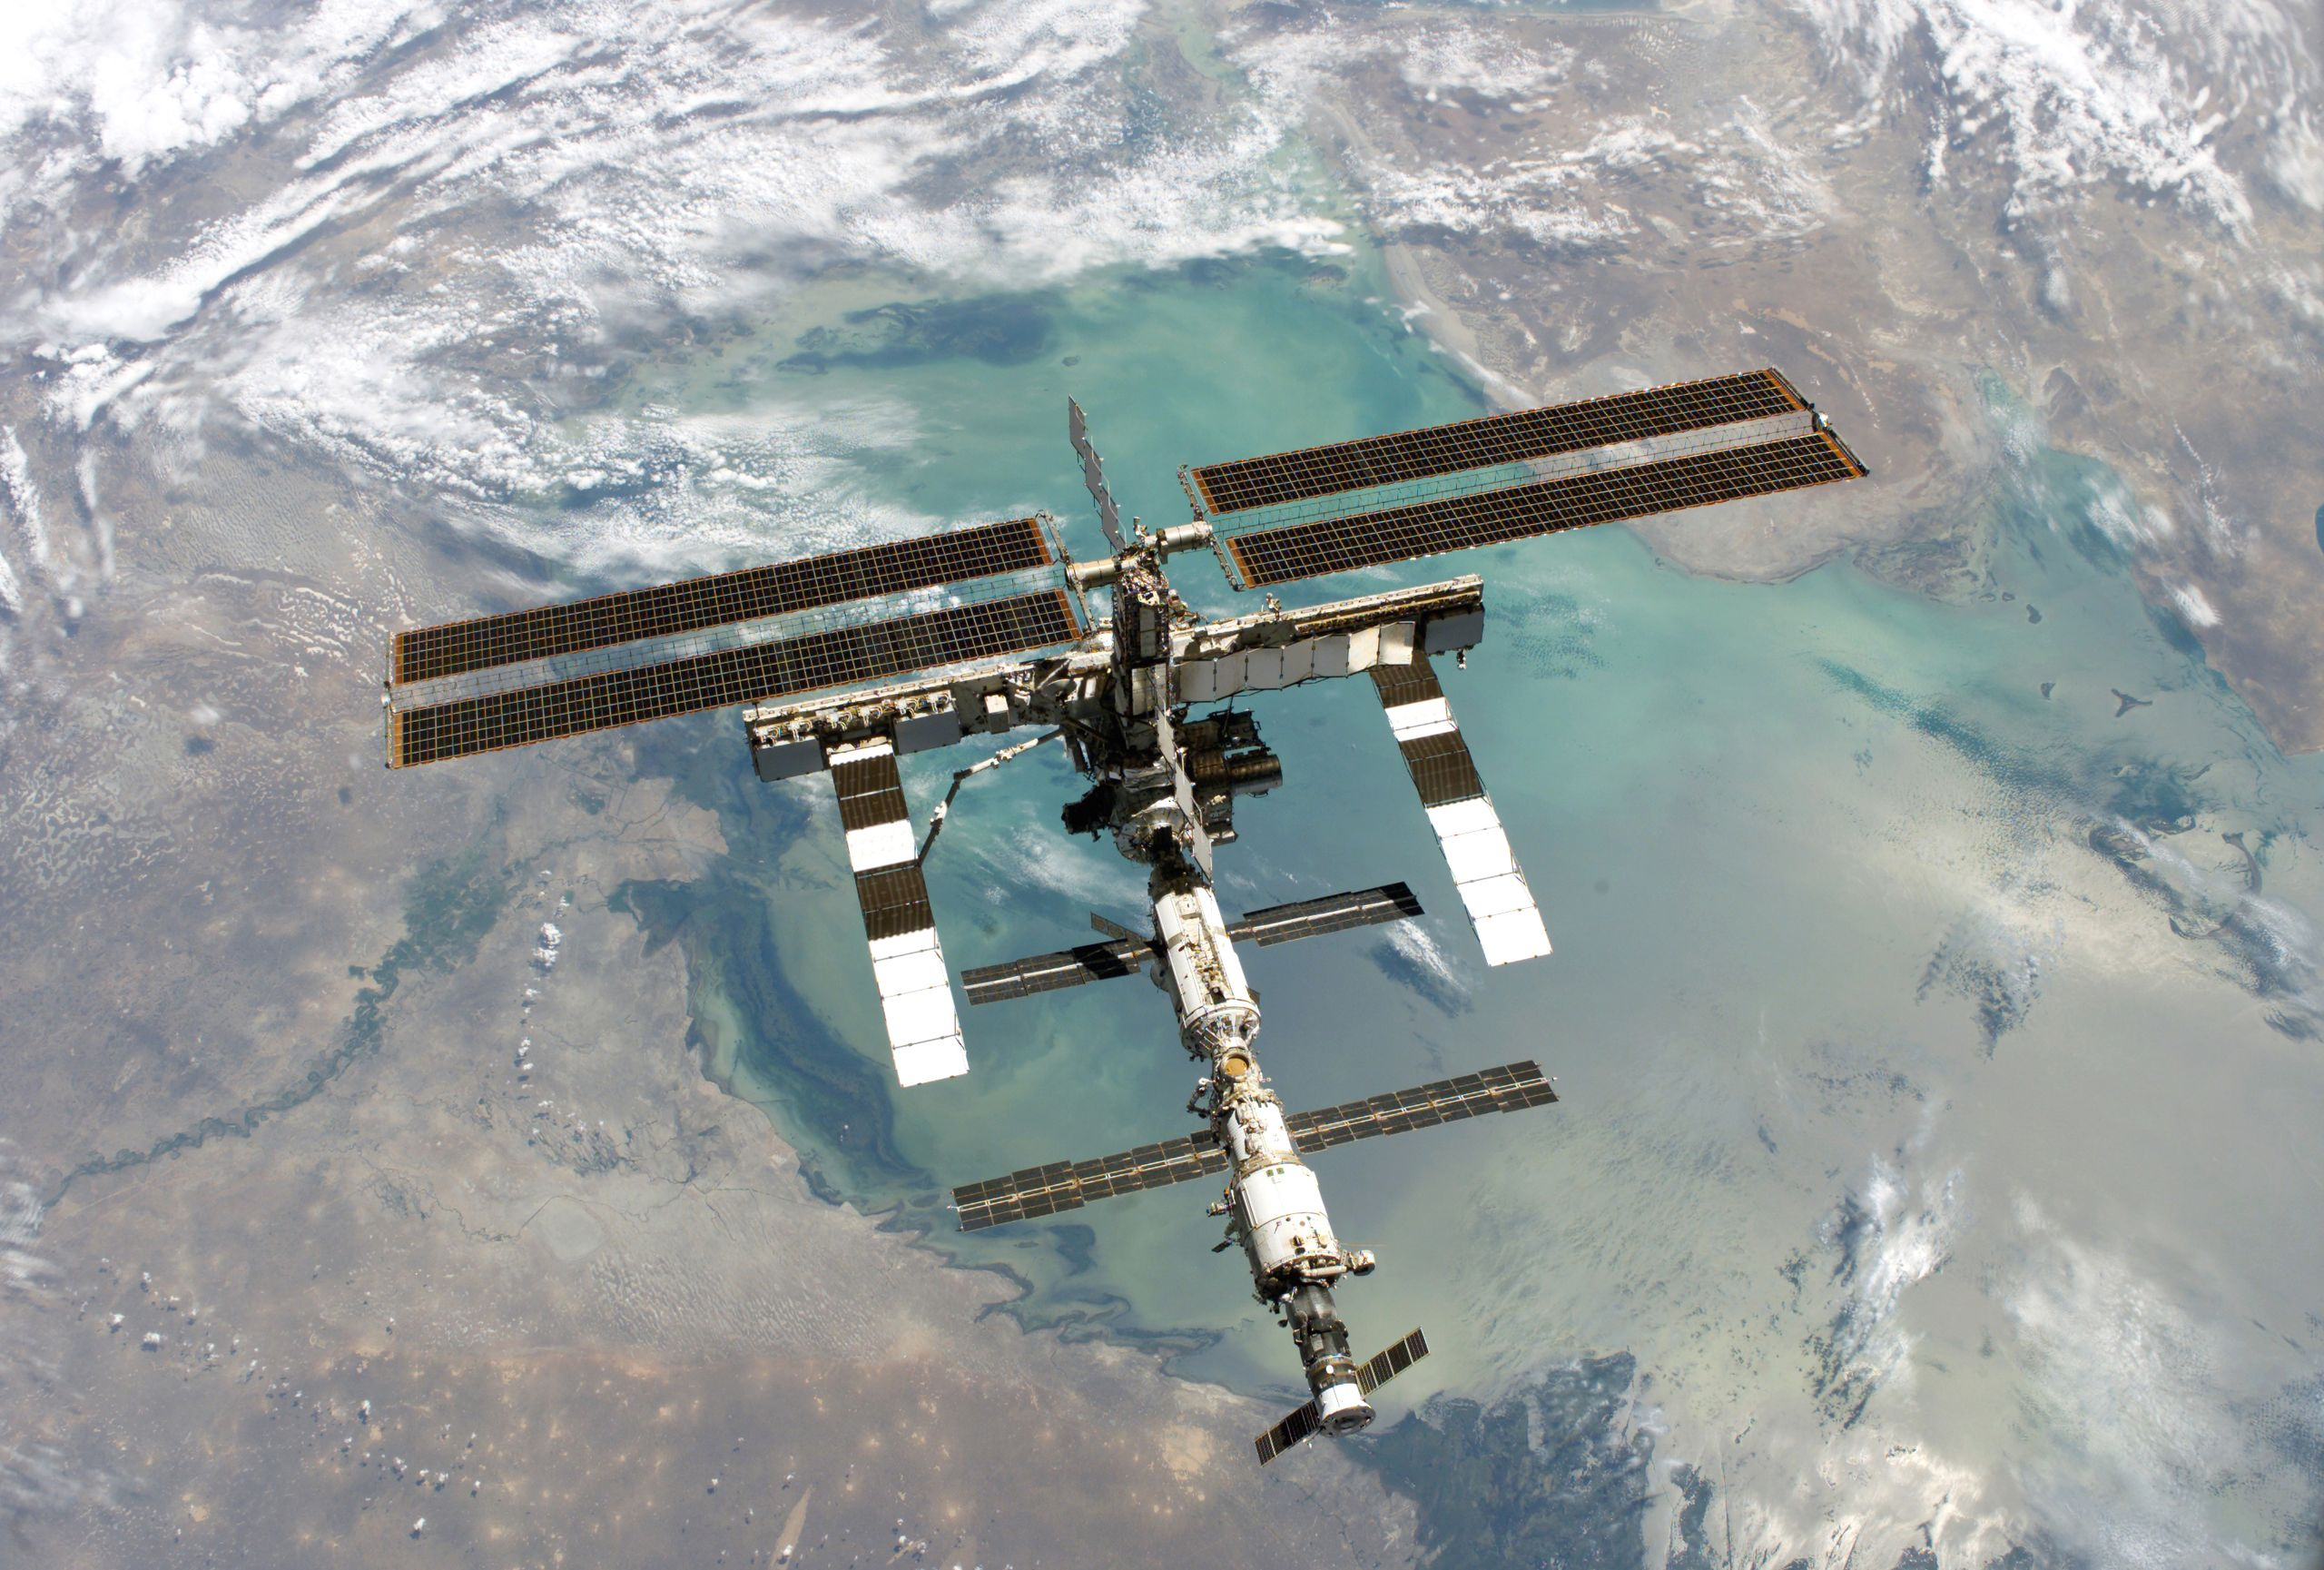 The ISS pictured from above, it looks down to the earth and sea below